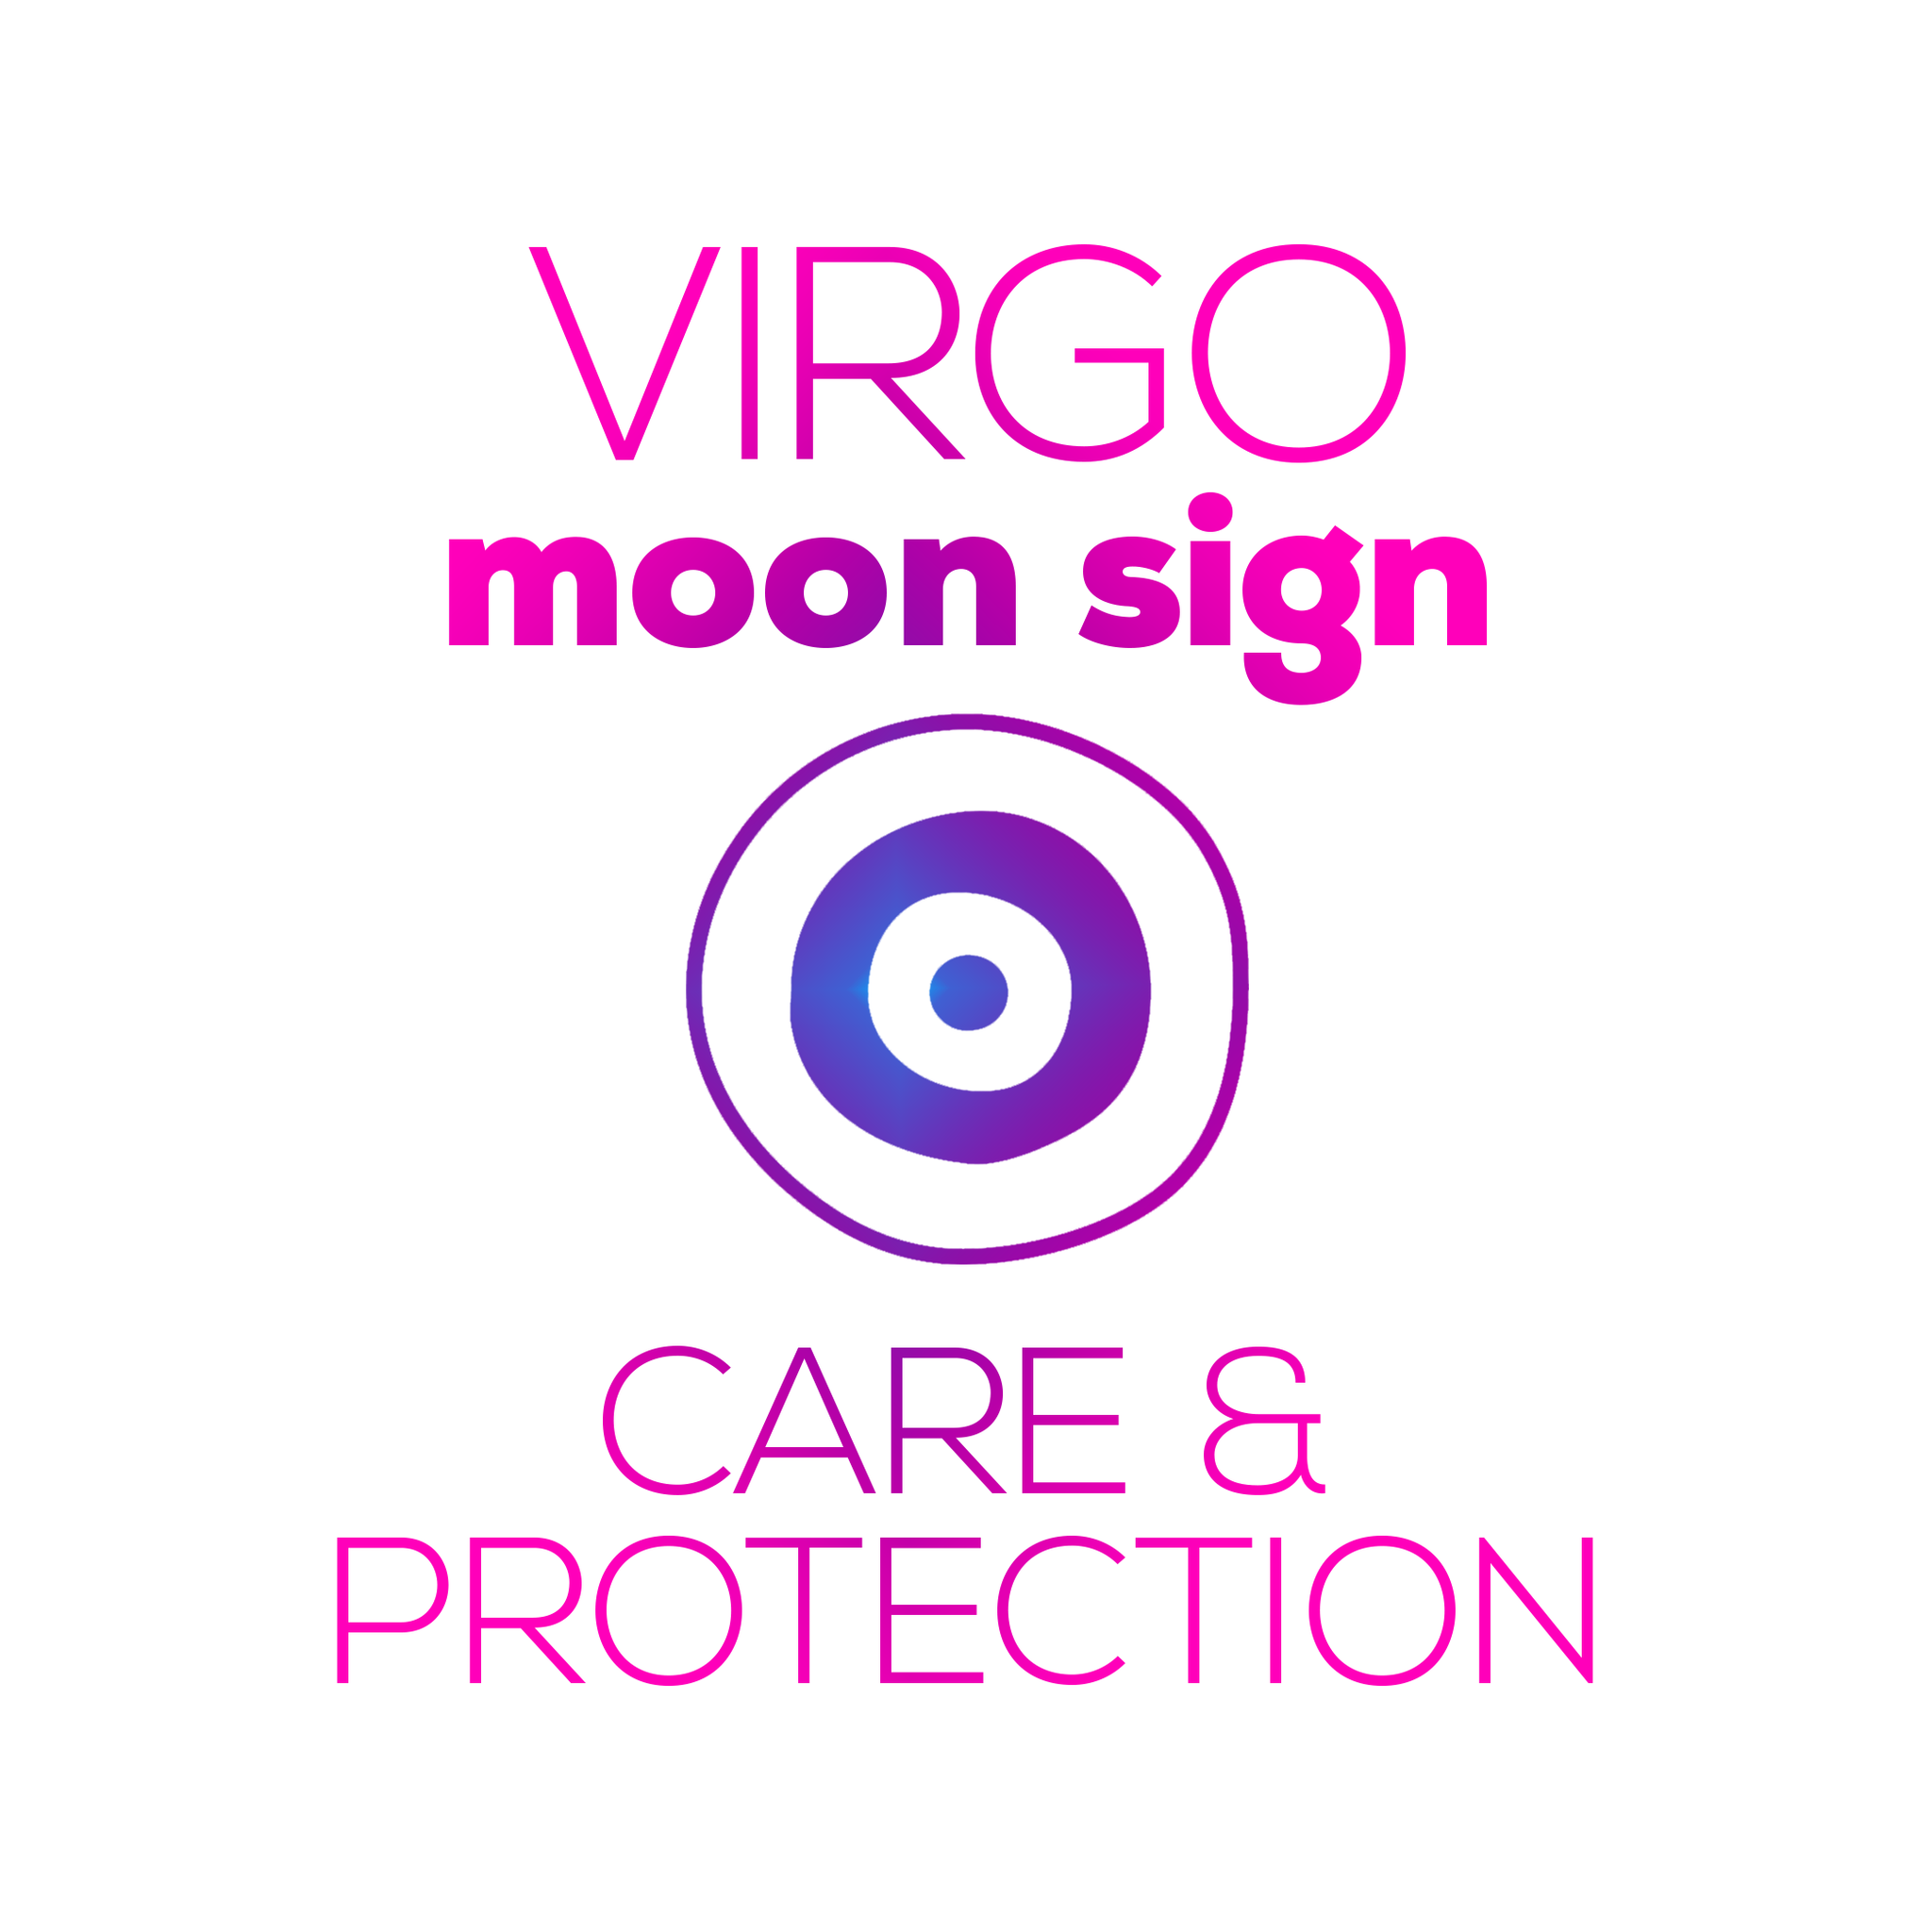 Care + Protection for Your Moon Sign - Virgo